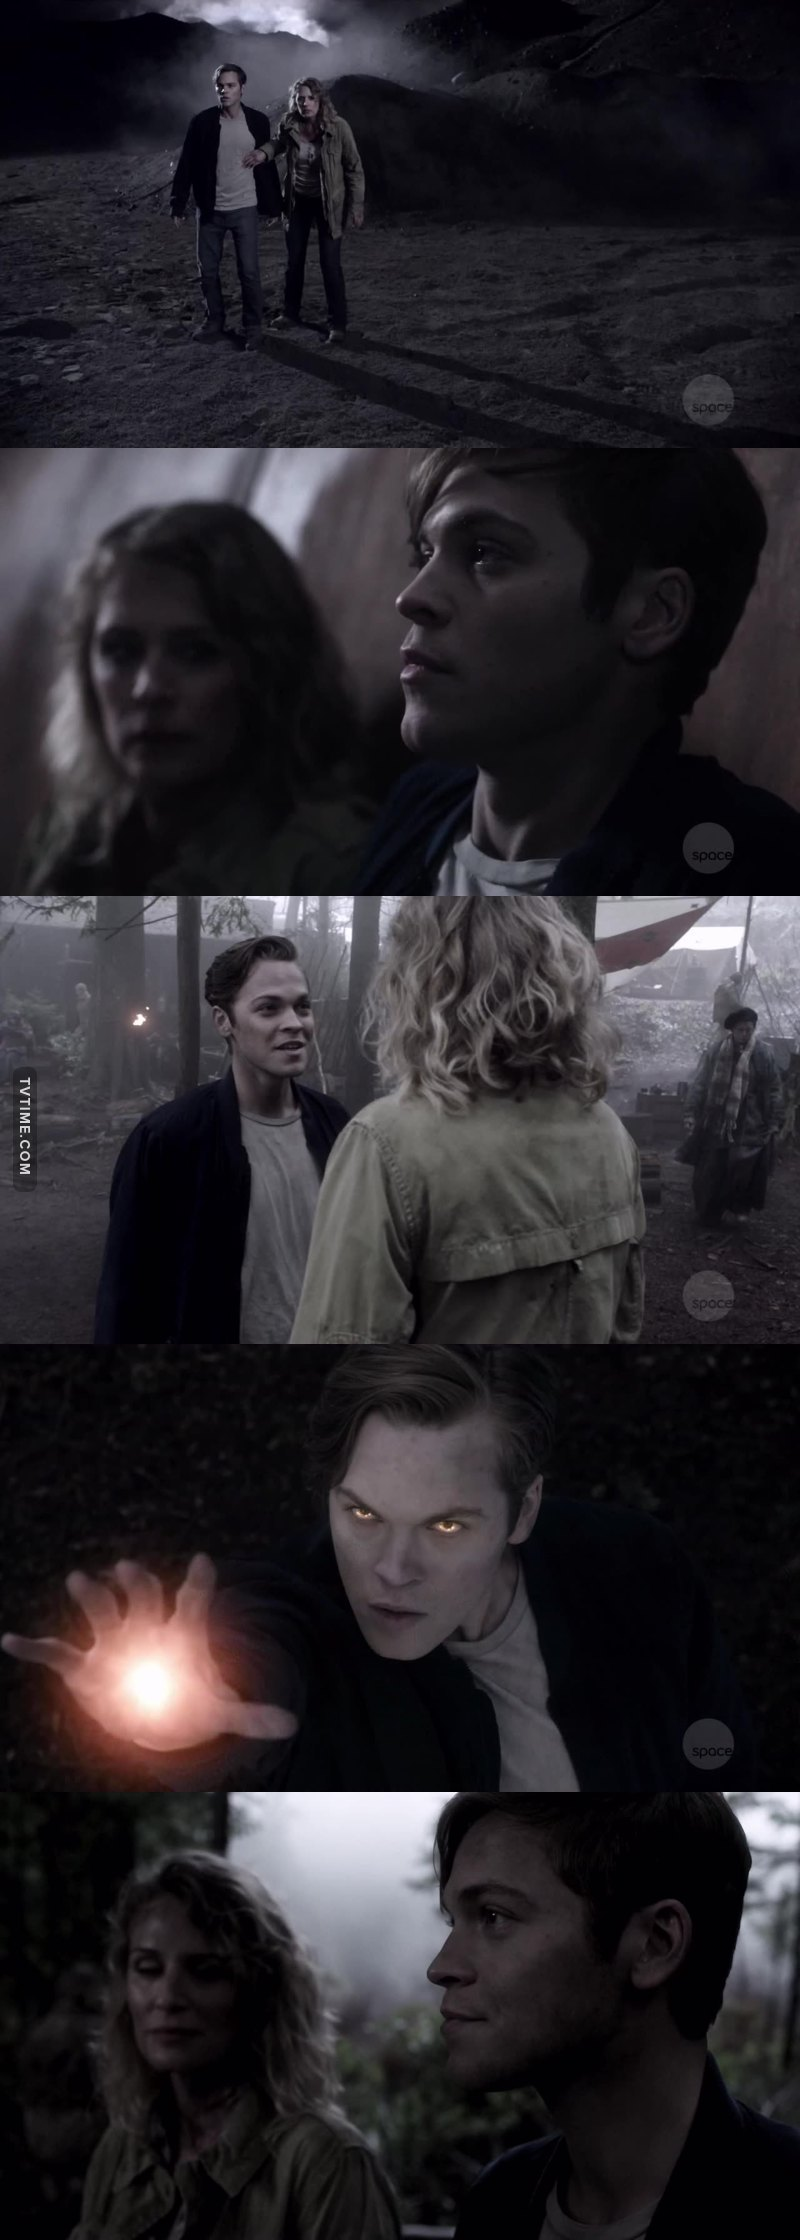 Jack is just too precious! 'Sorry I don't run,that is not what Sam and Dean would do' The way Mary looked at him, I think she's gonna adopt him.